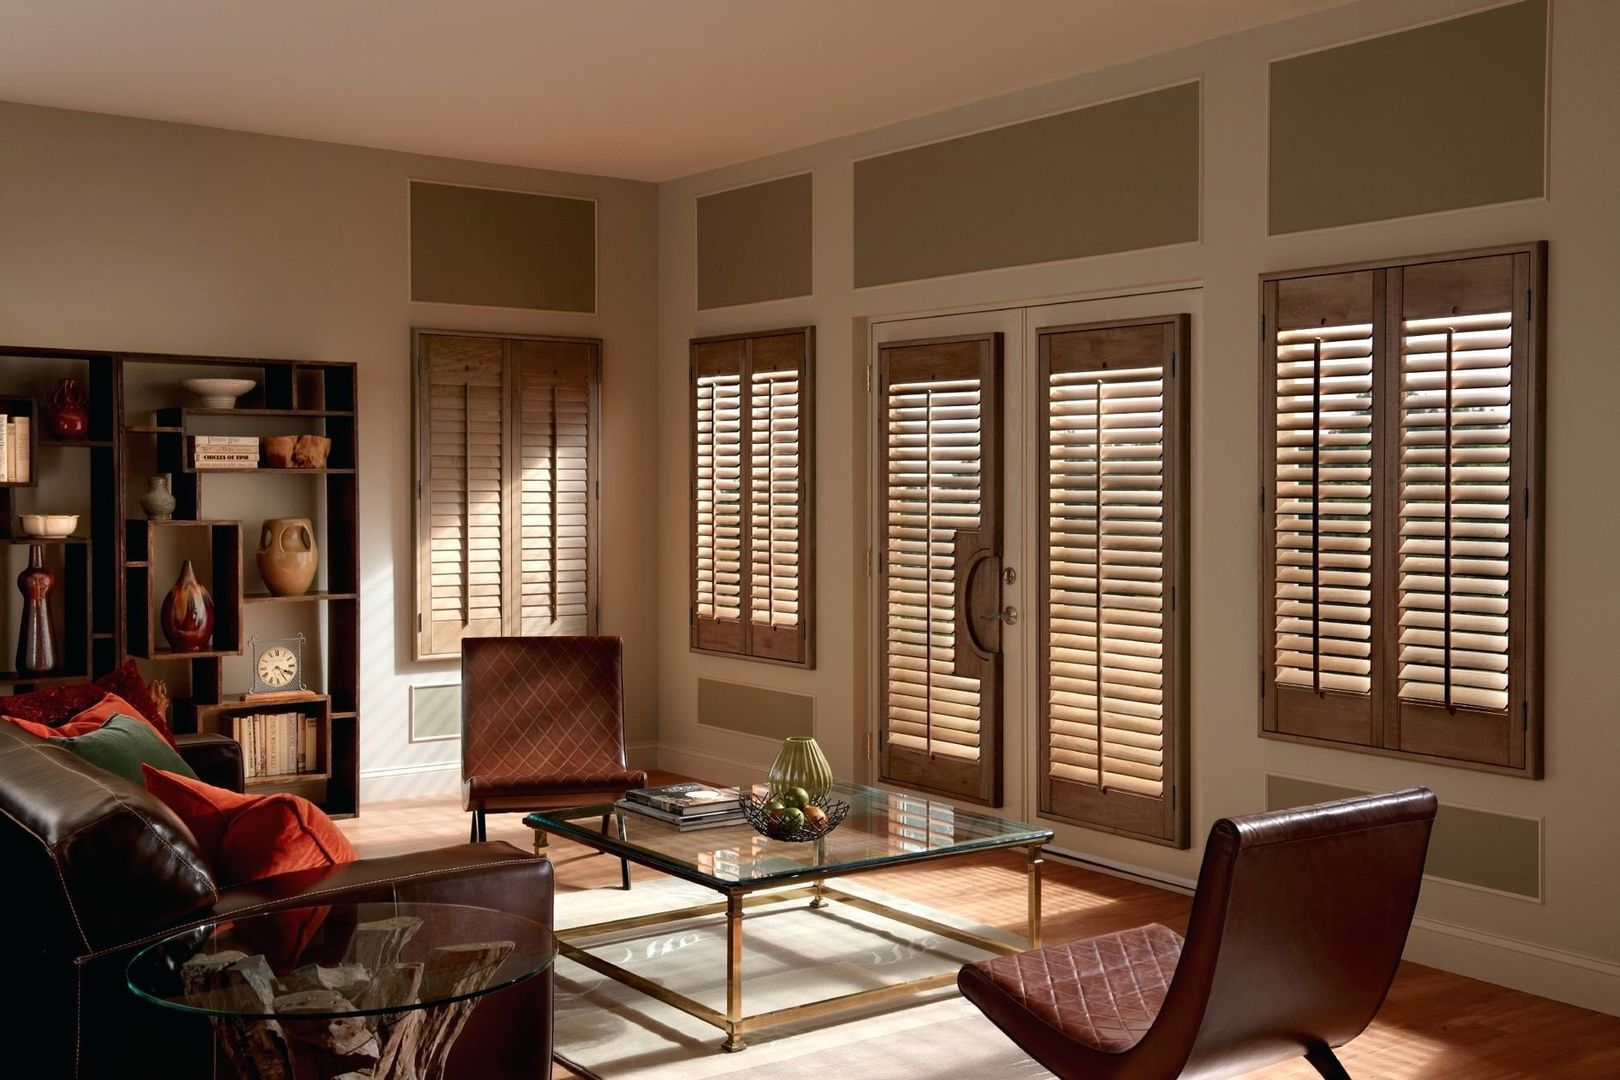 Custom Window Blinds and Shades for House - Blinds and Window Coverings in Tampa Bay Area